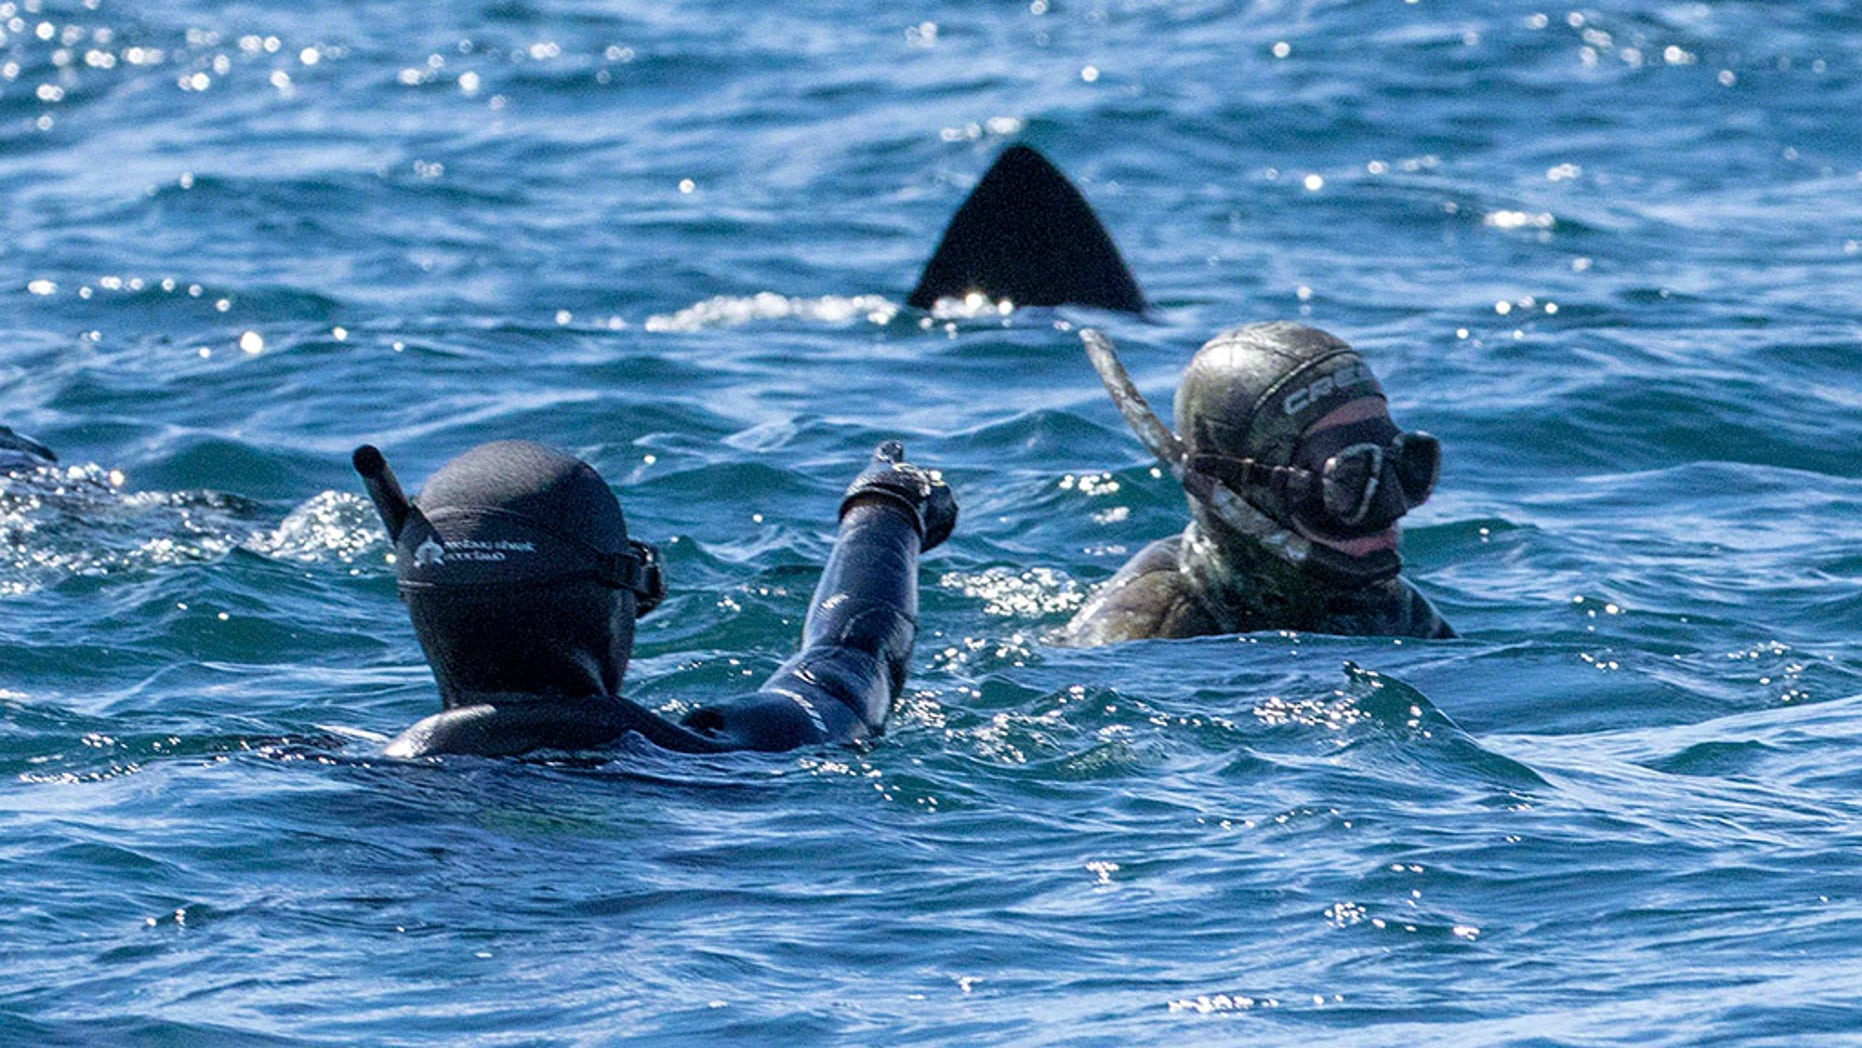 These snorkelers were confronted by a huge dorsal fin in Scotland's Inner Hebrides. Luckily the animal was a harmless basking shark